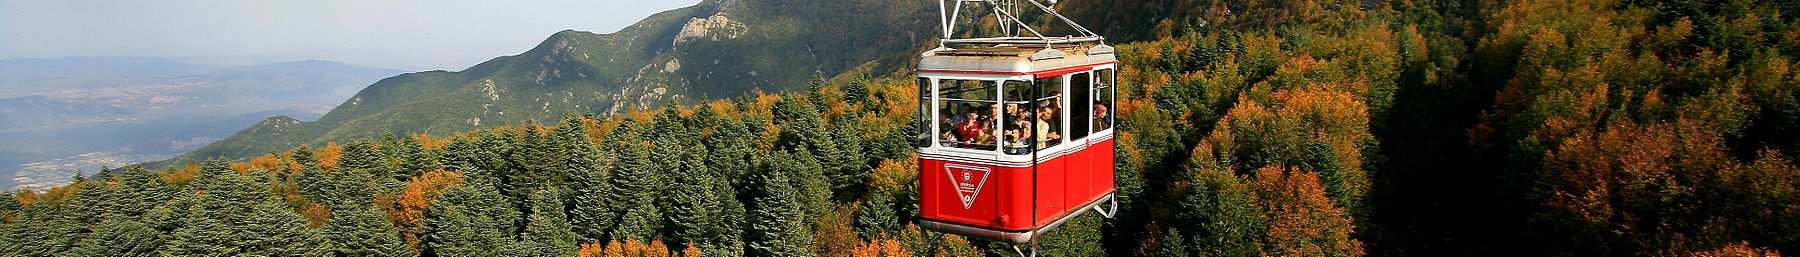 Cable car going up to Uludağ